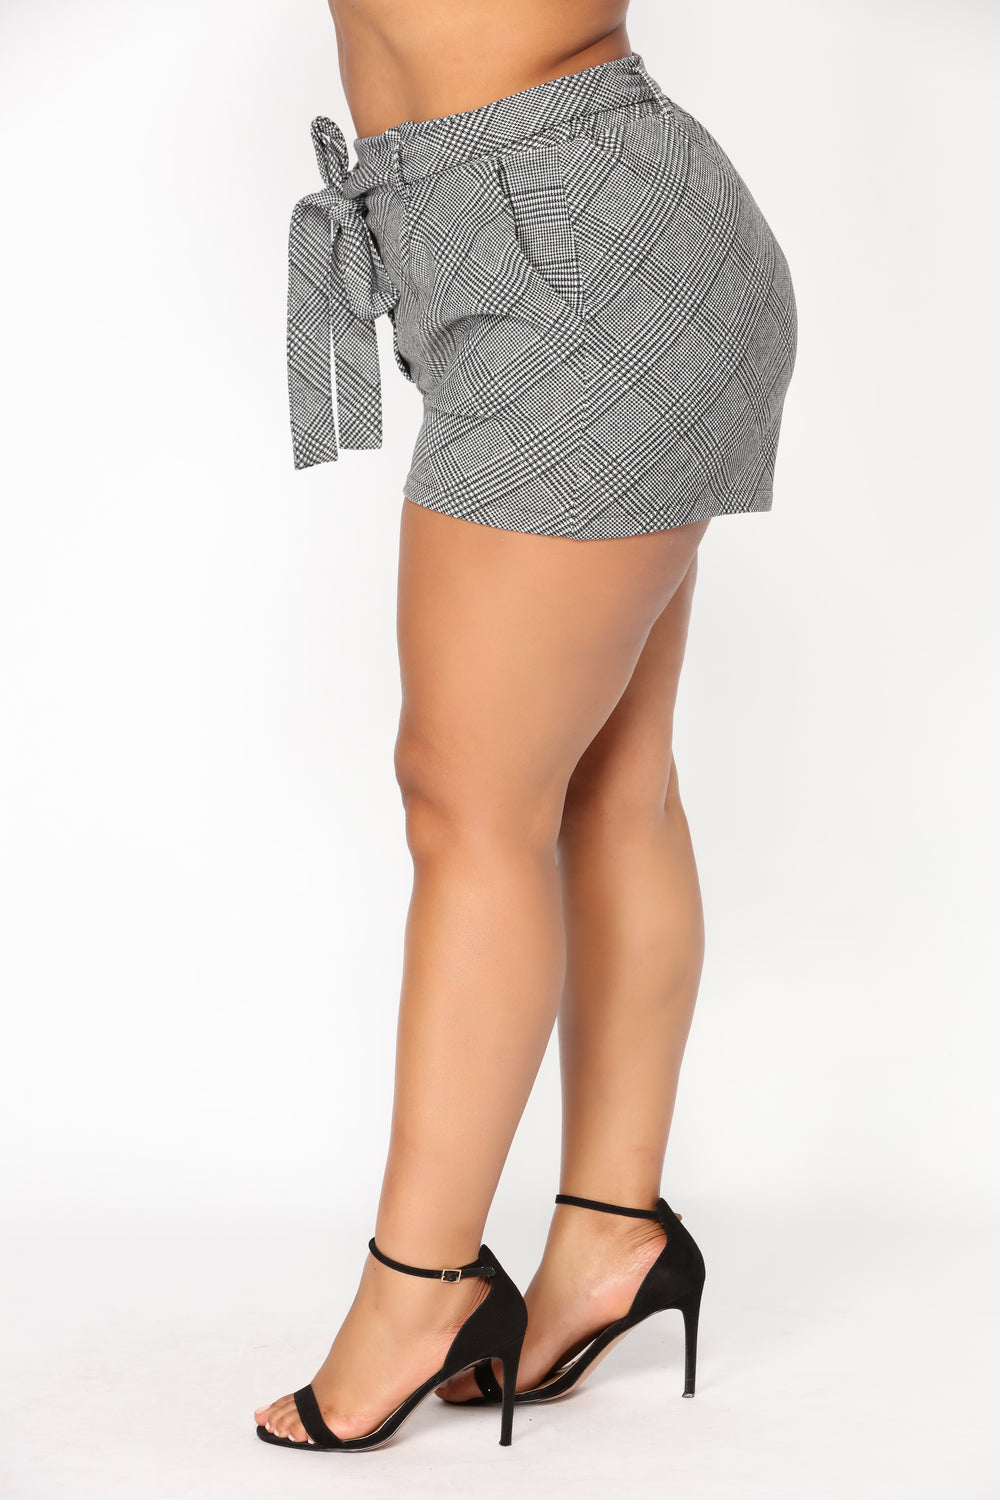 Pammy Plaid Shorts - Black/White